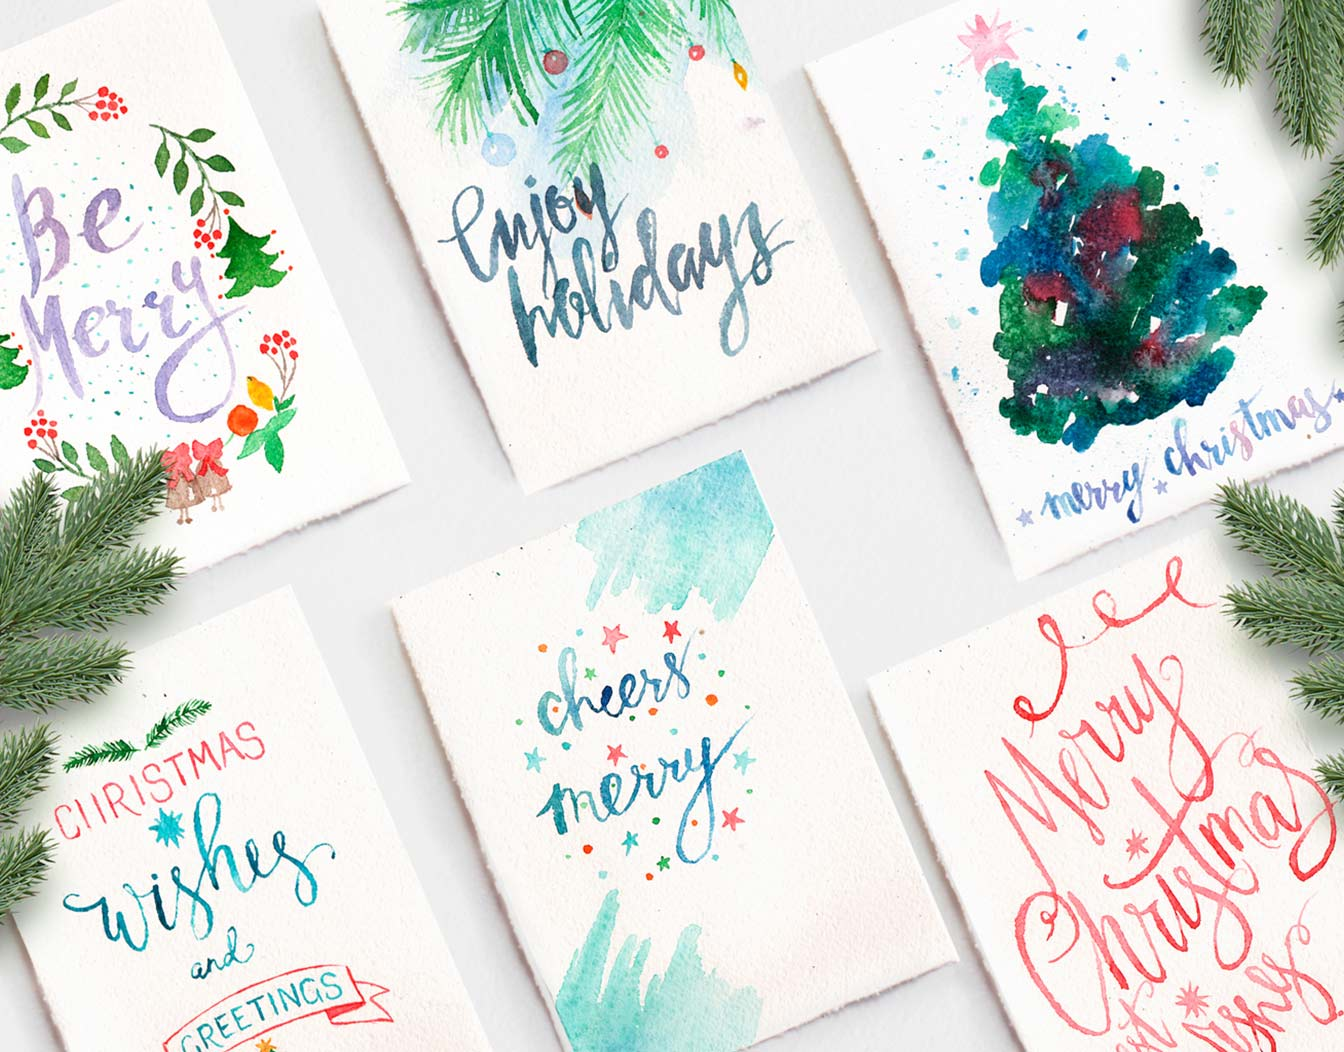 Watercolor Christmas cards lined up on white surface